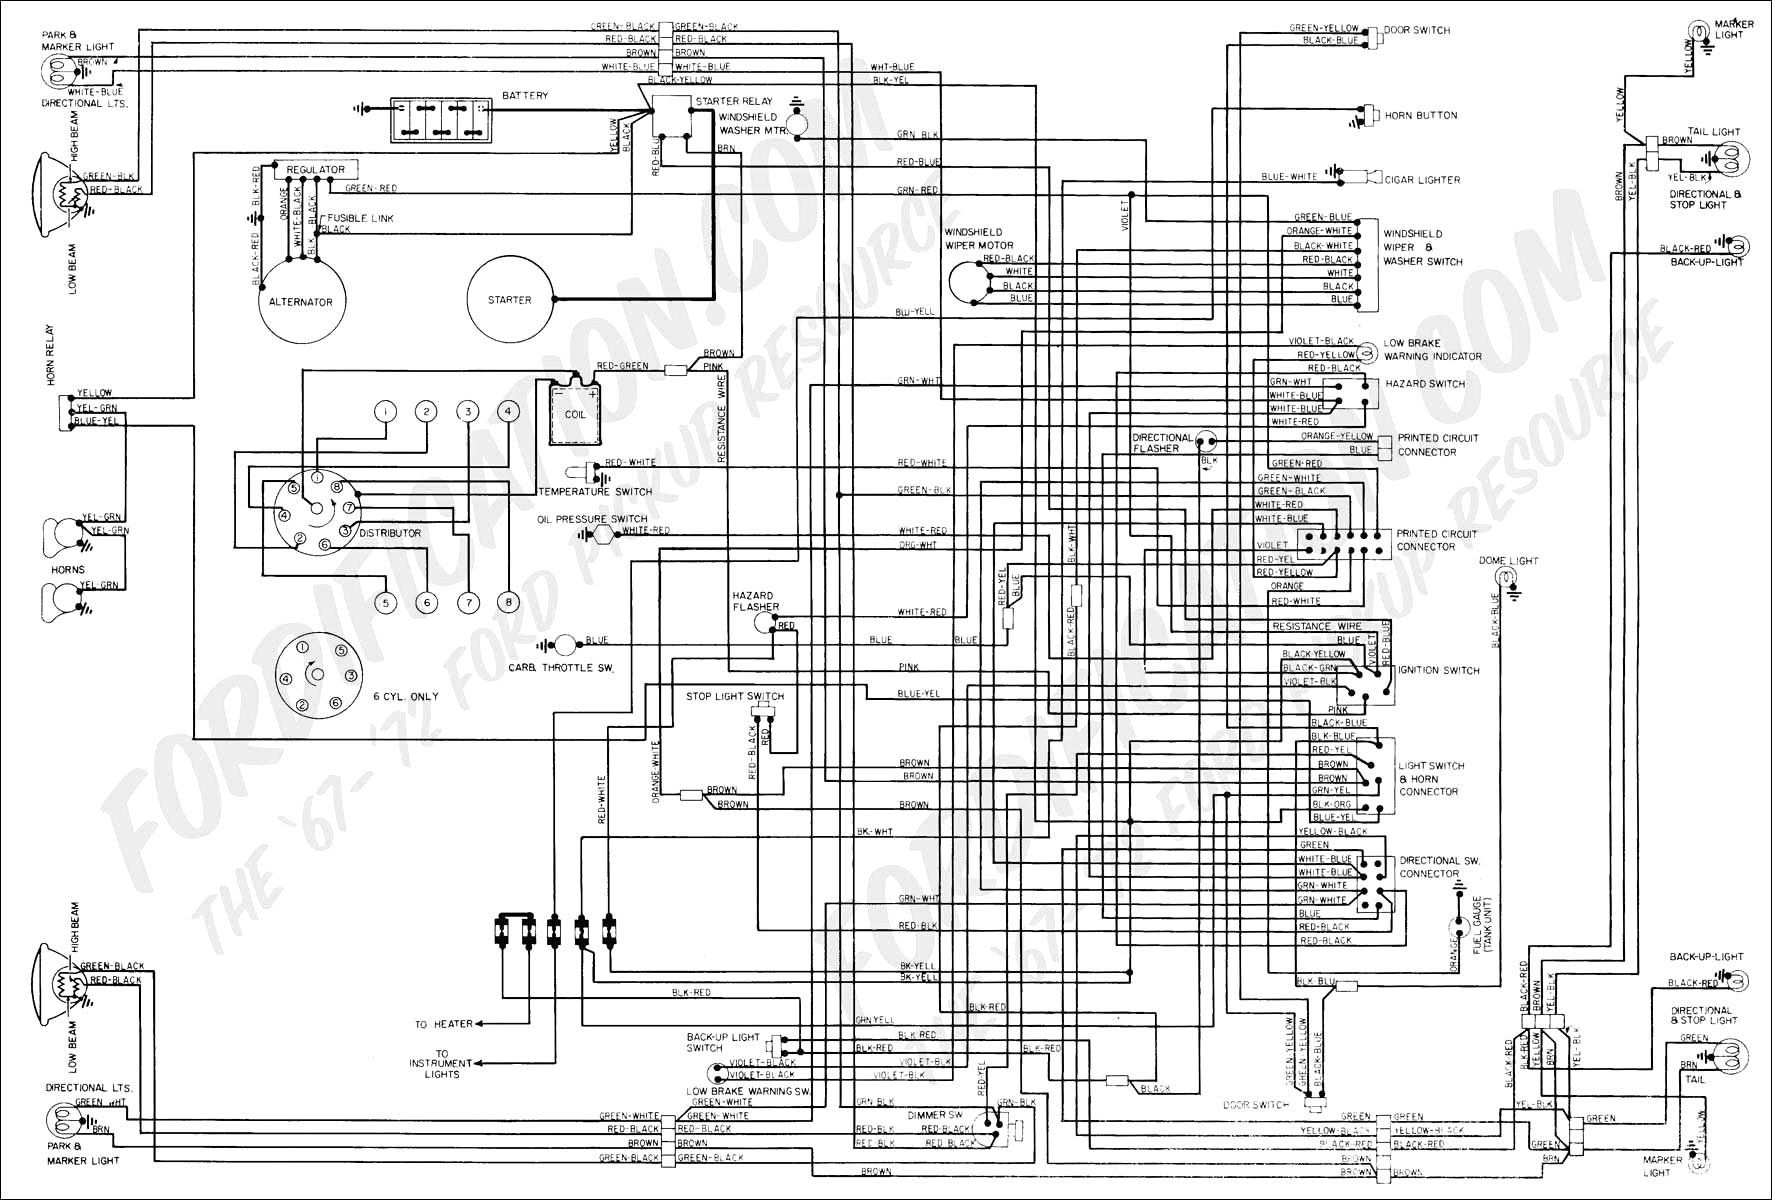 medium resolution of 06 f250 wiring diagram wiring diagram val 2006 ford f250 wiring diagram 06 ford f250 wiring diagram